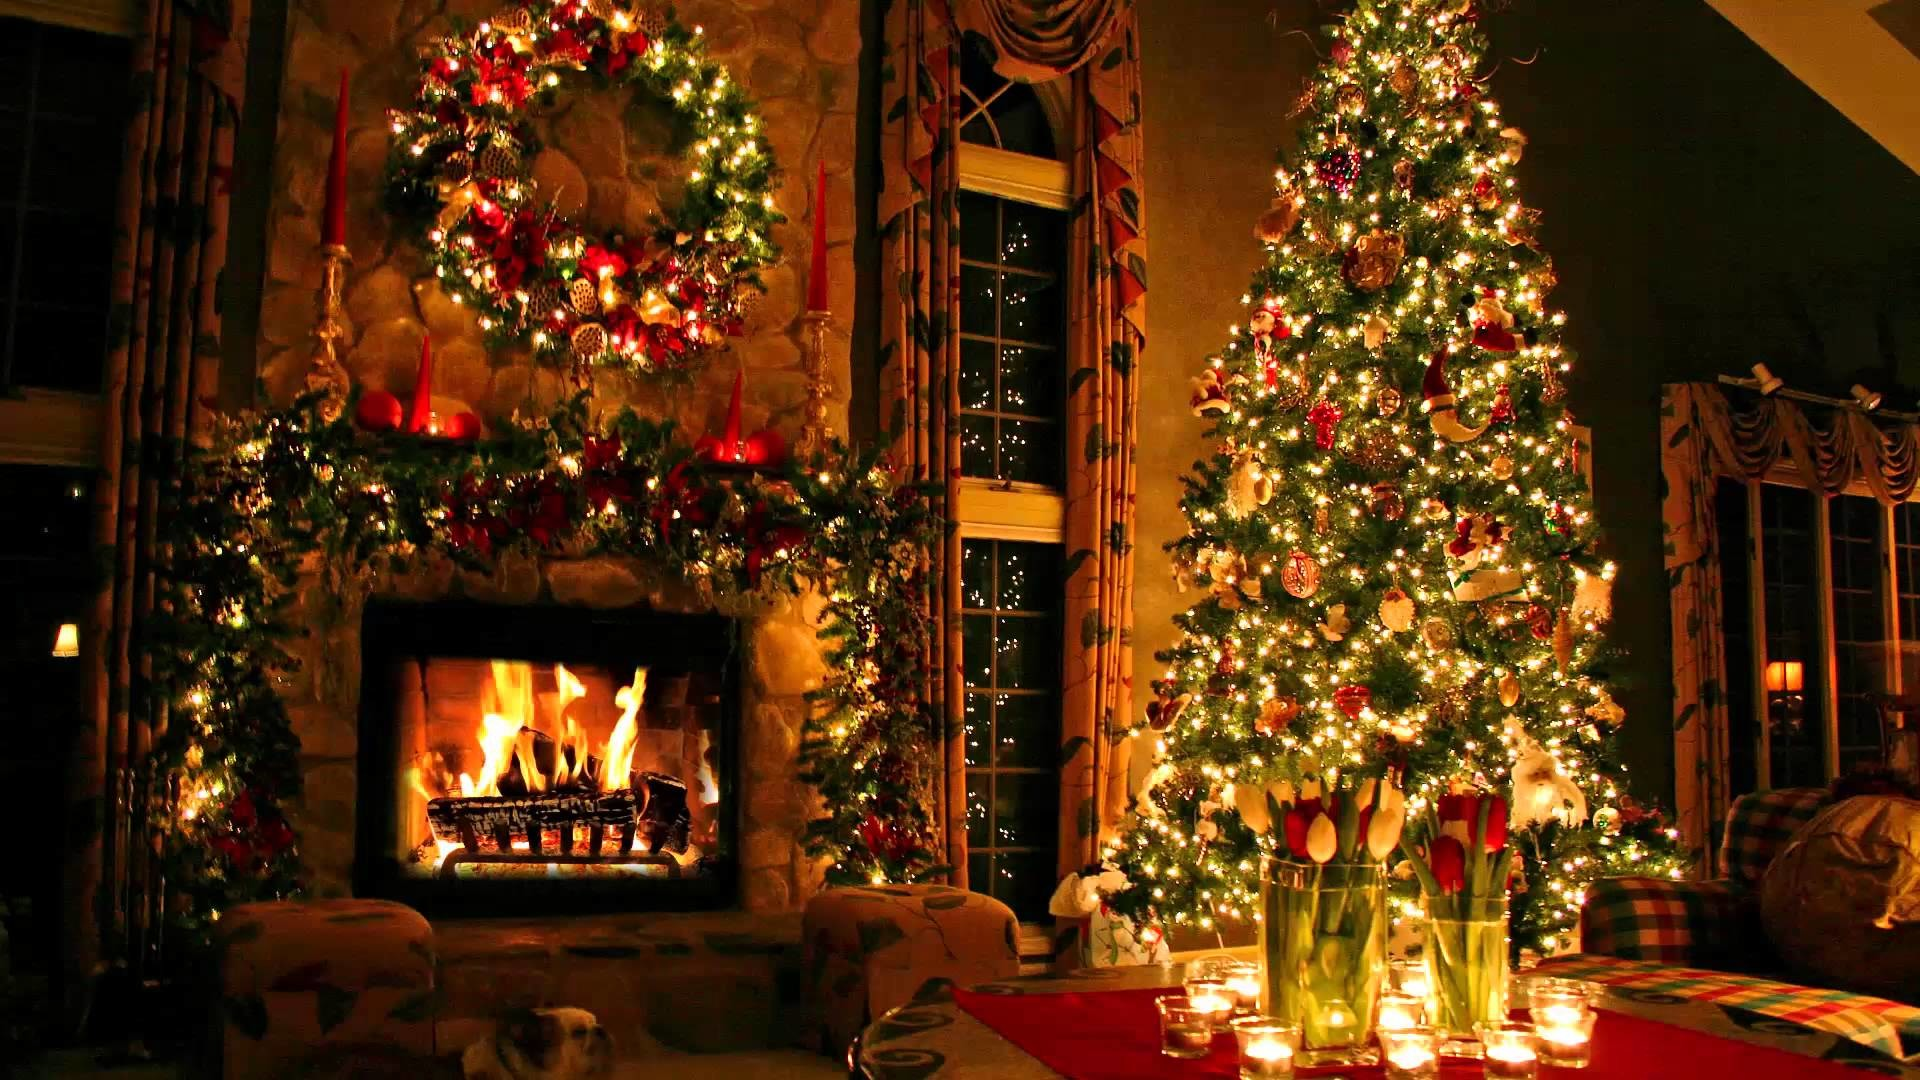 Christmas Fireplace Background ① Wallpapertag